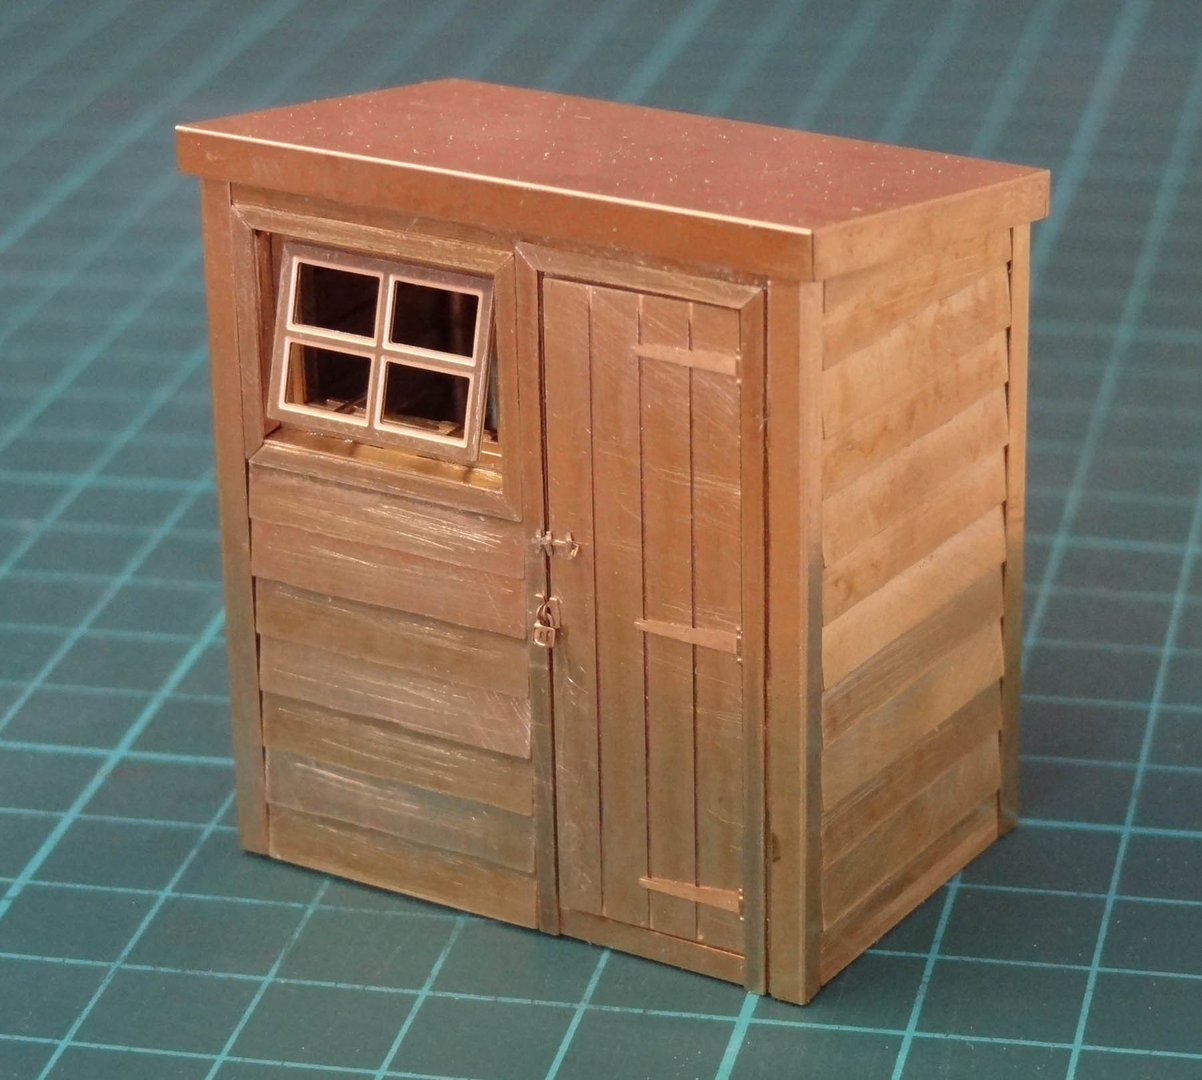 O1 Pent Roof Garden Shed